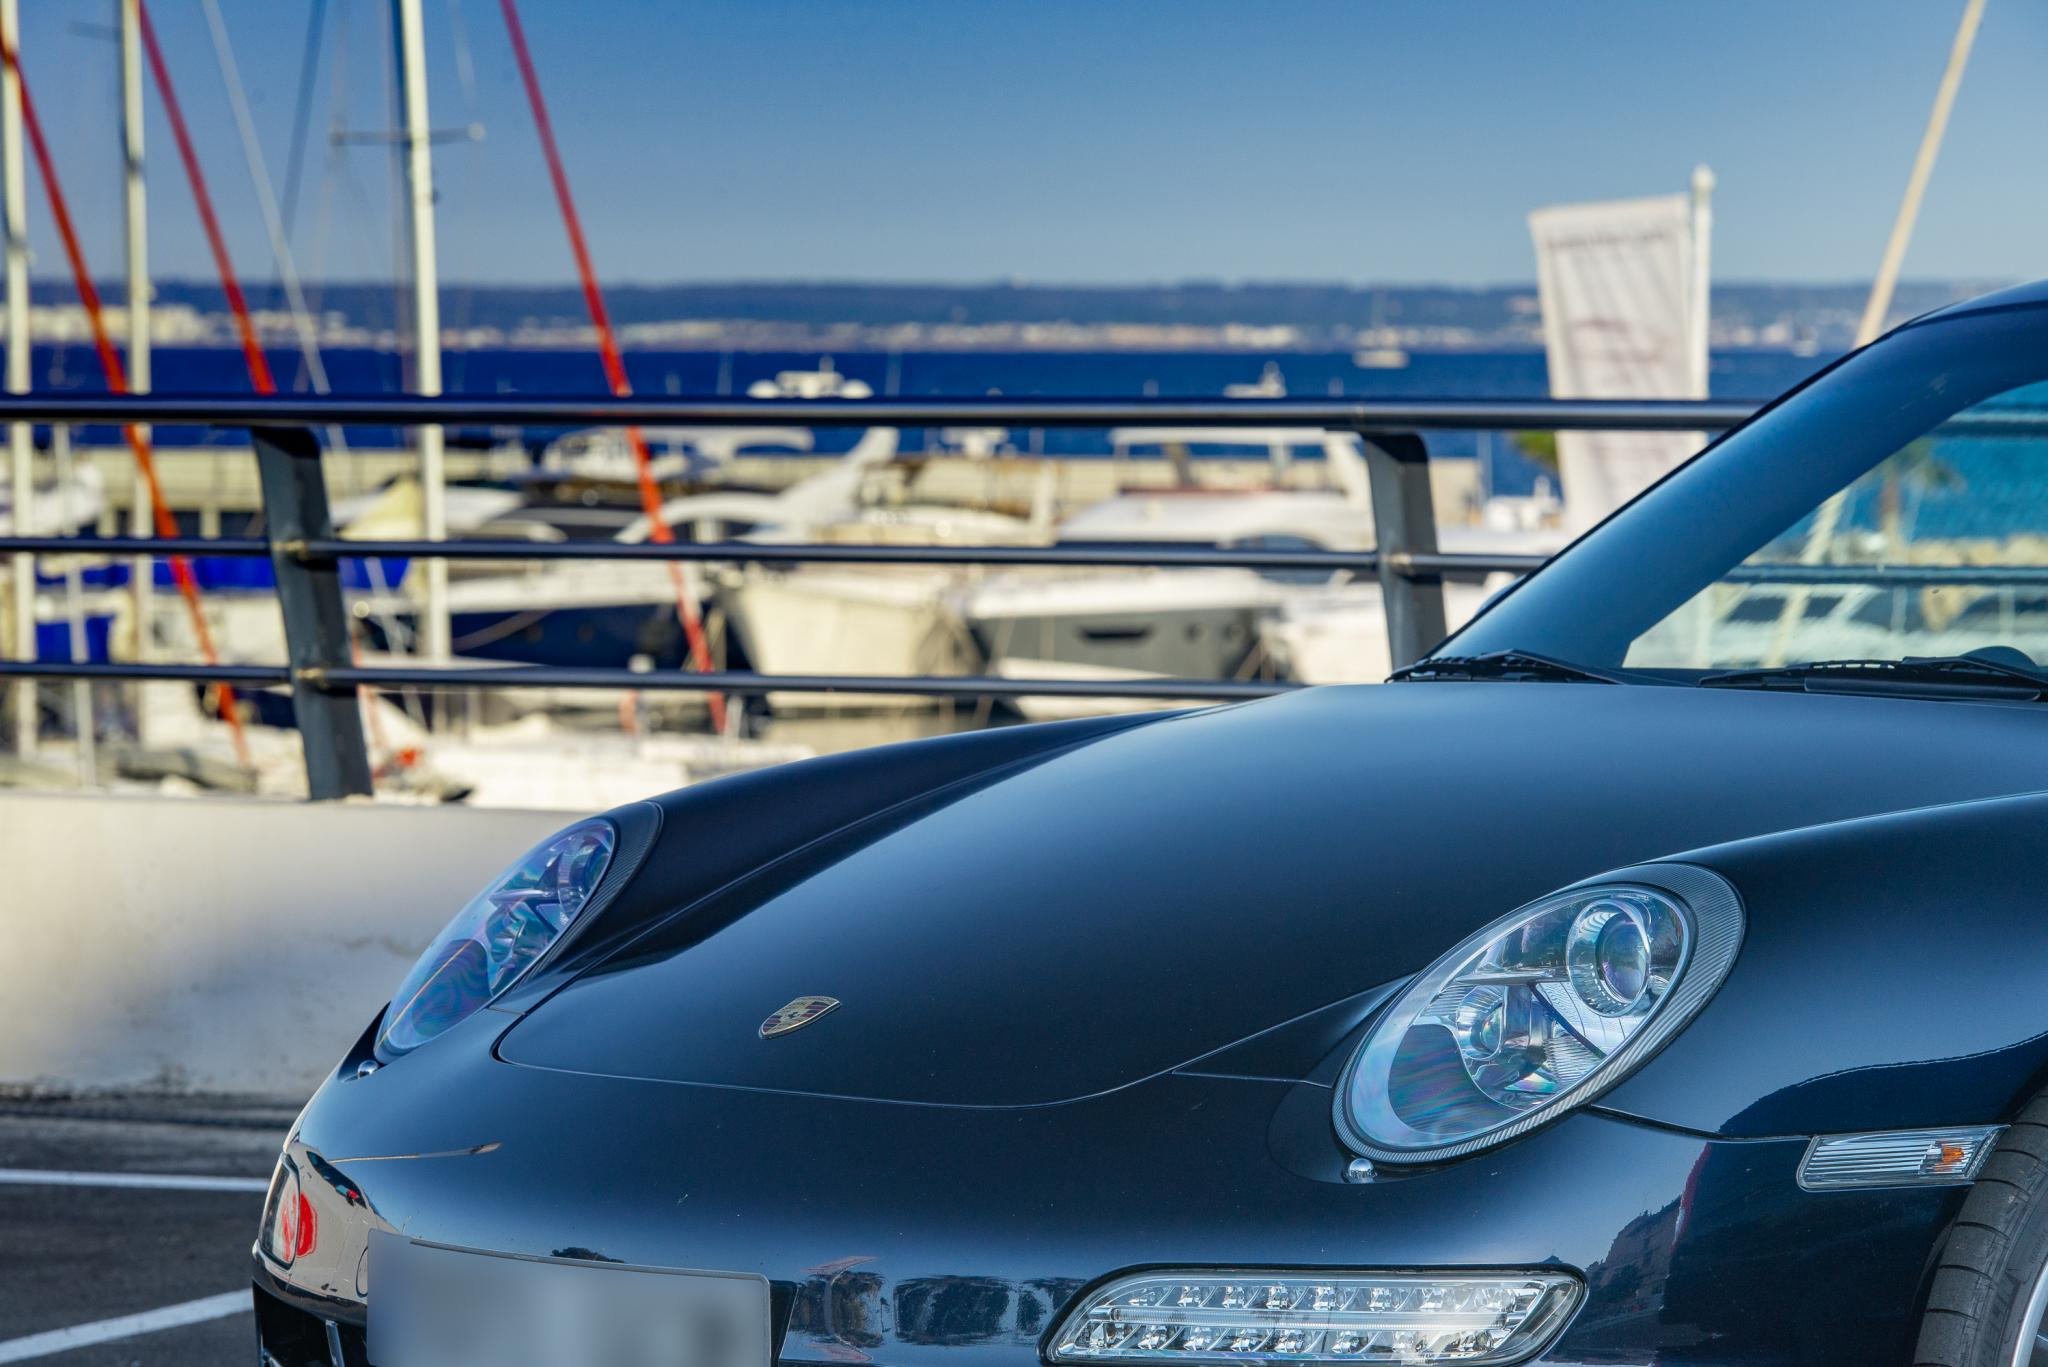 Arty Porsche against Calanova harbour backdrop.